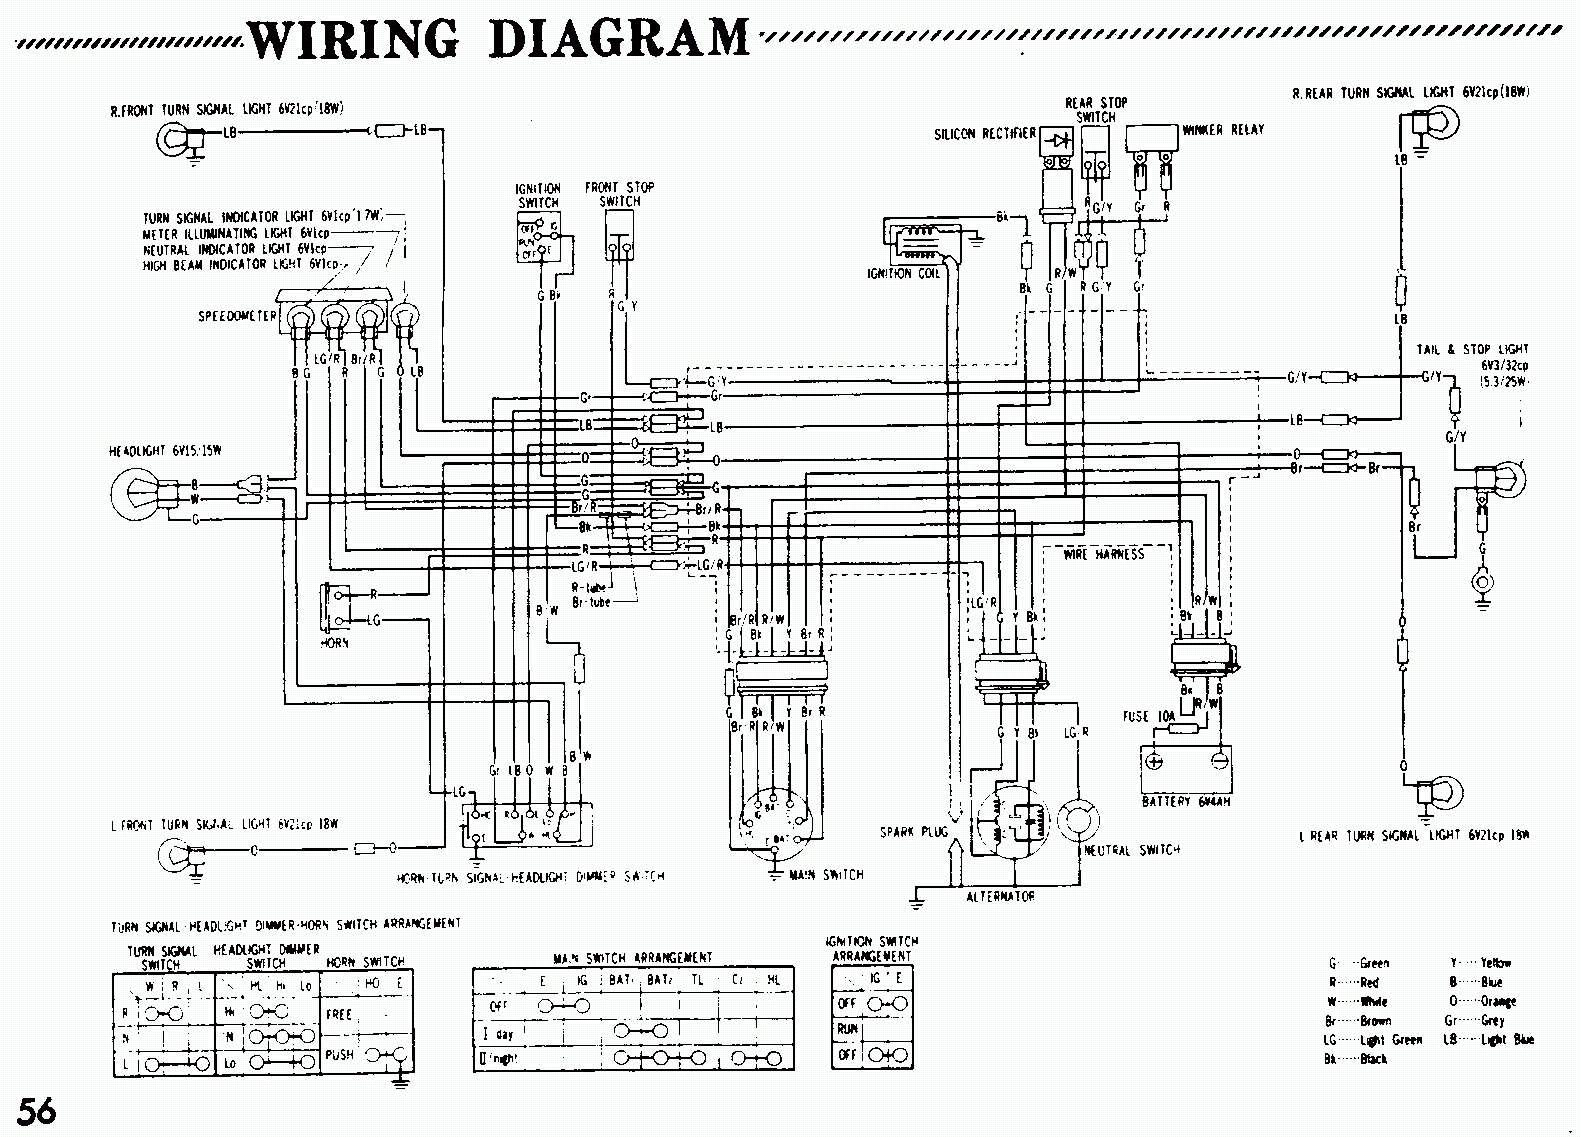 Tbolt usa tech database tbolt usa llc a high quality ct70 and clone engine wiring diagram is available at httpparduebrothersproducthonda ct70 lifan clone engine 12 volt wiring diagram swarovskicordoba Choice Image